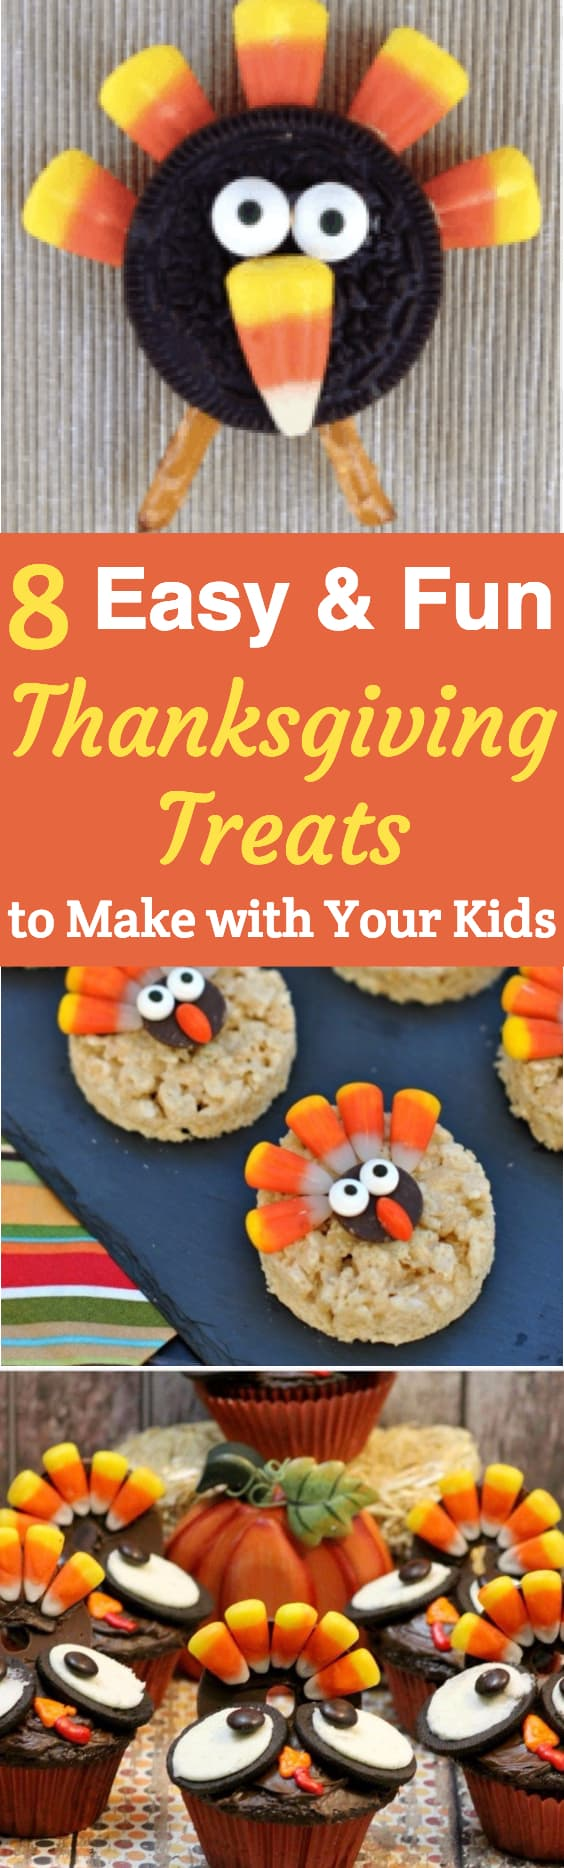 For more easy Thanksgiving treats for kids, check out our Turkey Lollipops, Rice Krispie Turkey Treats and Turkey Cupcakes. All these snacks are very easy to .